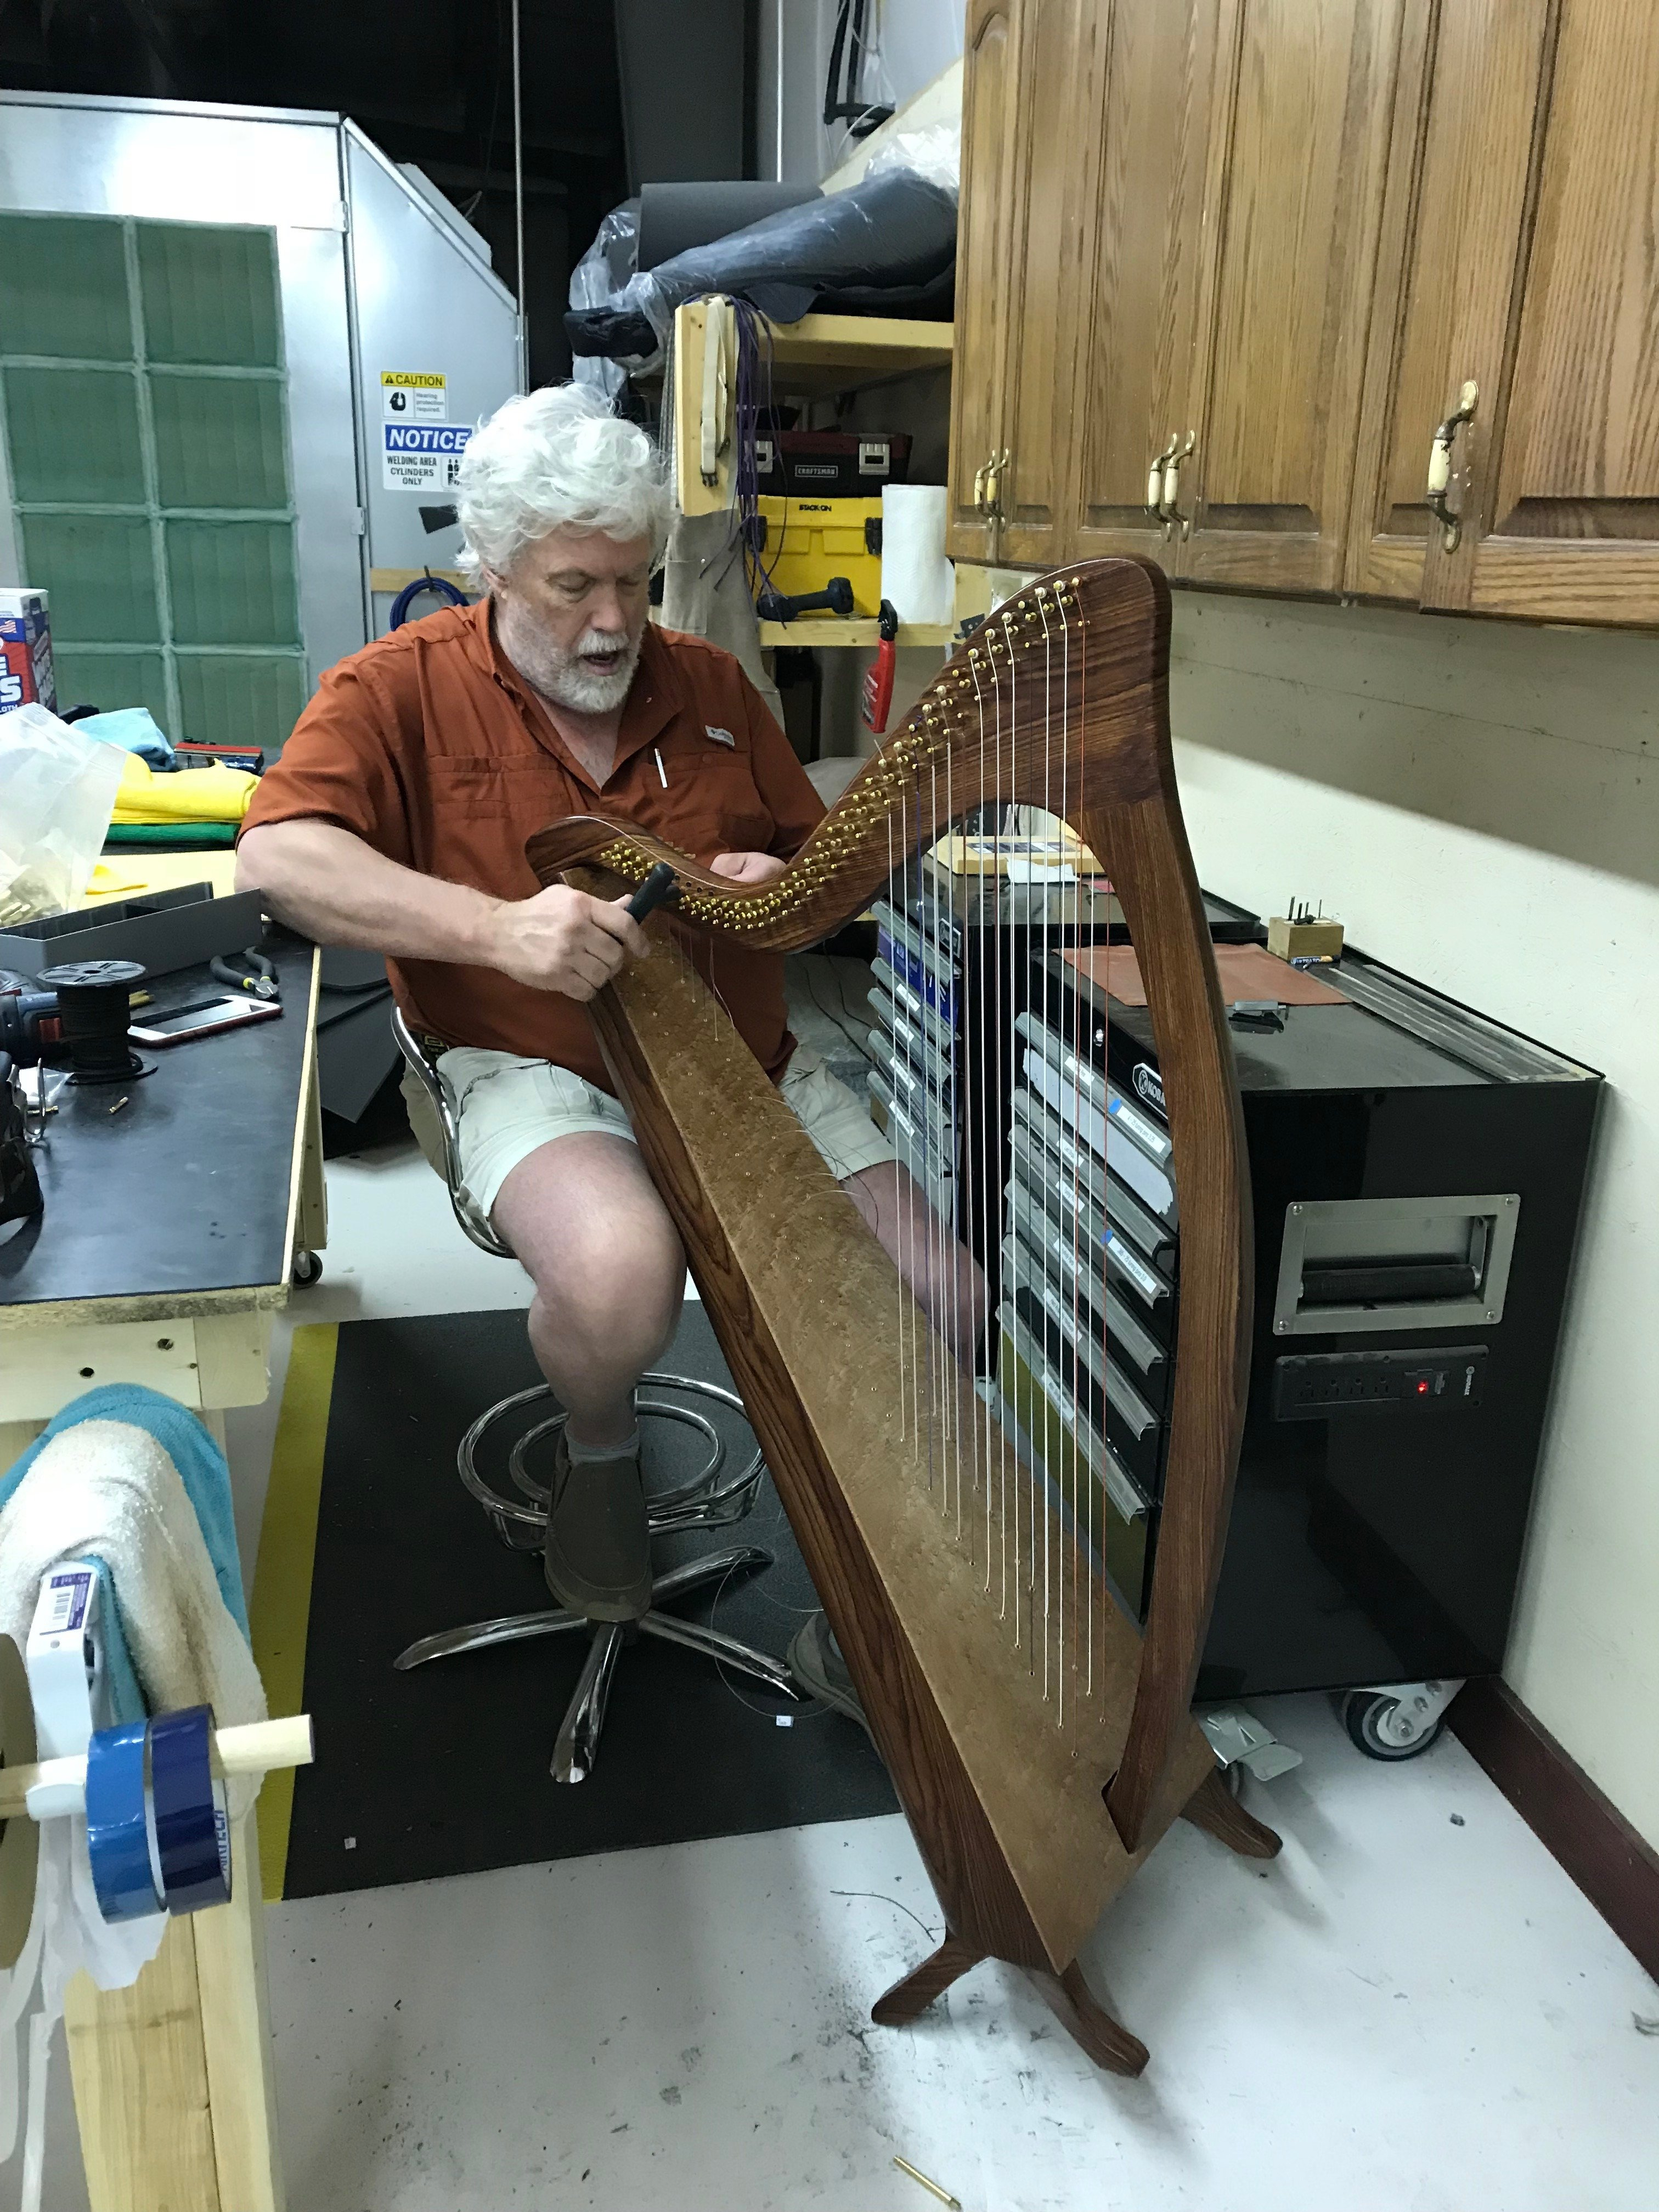 Carbon fiber harp with wood grain finish